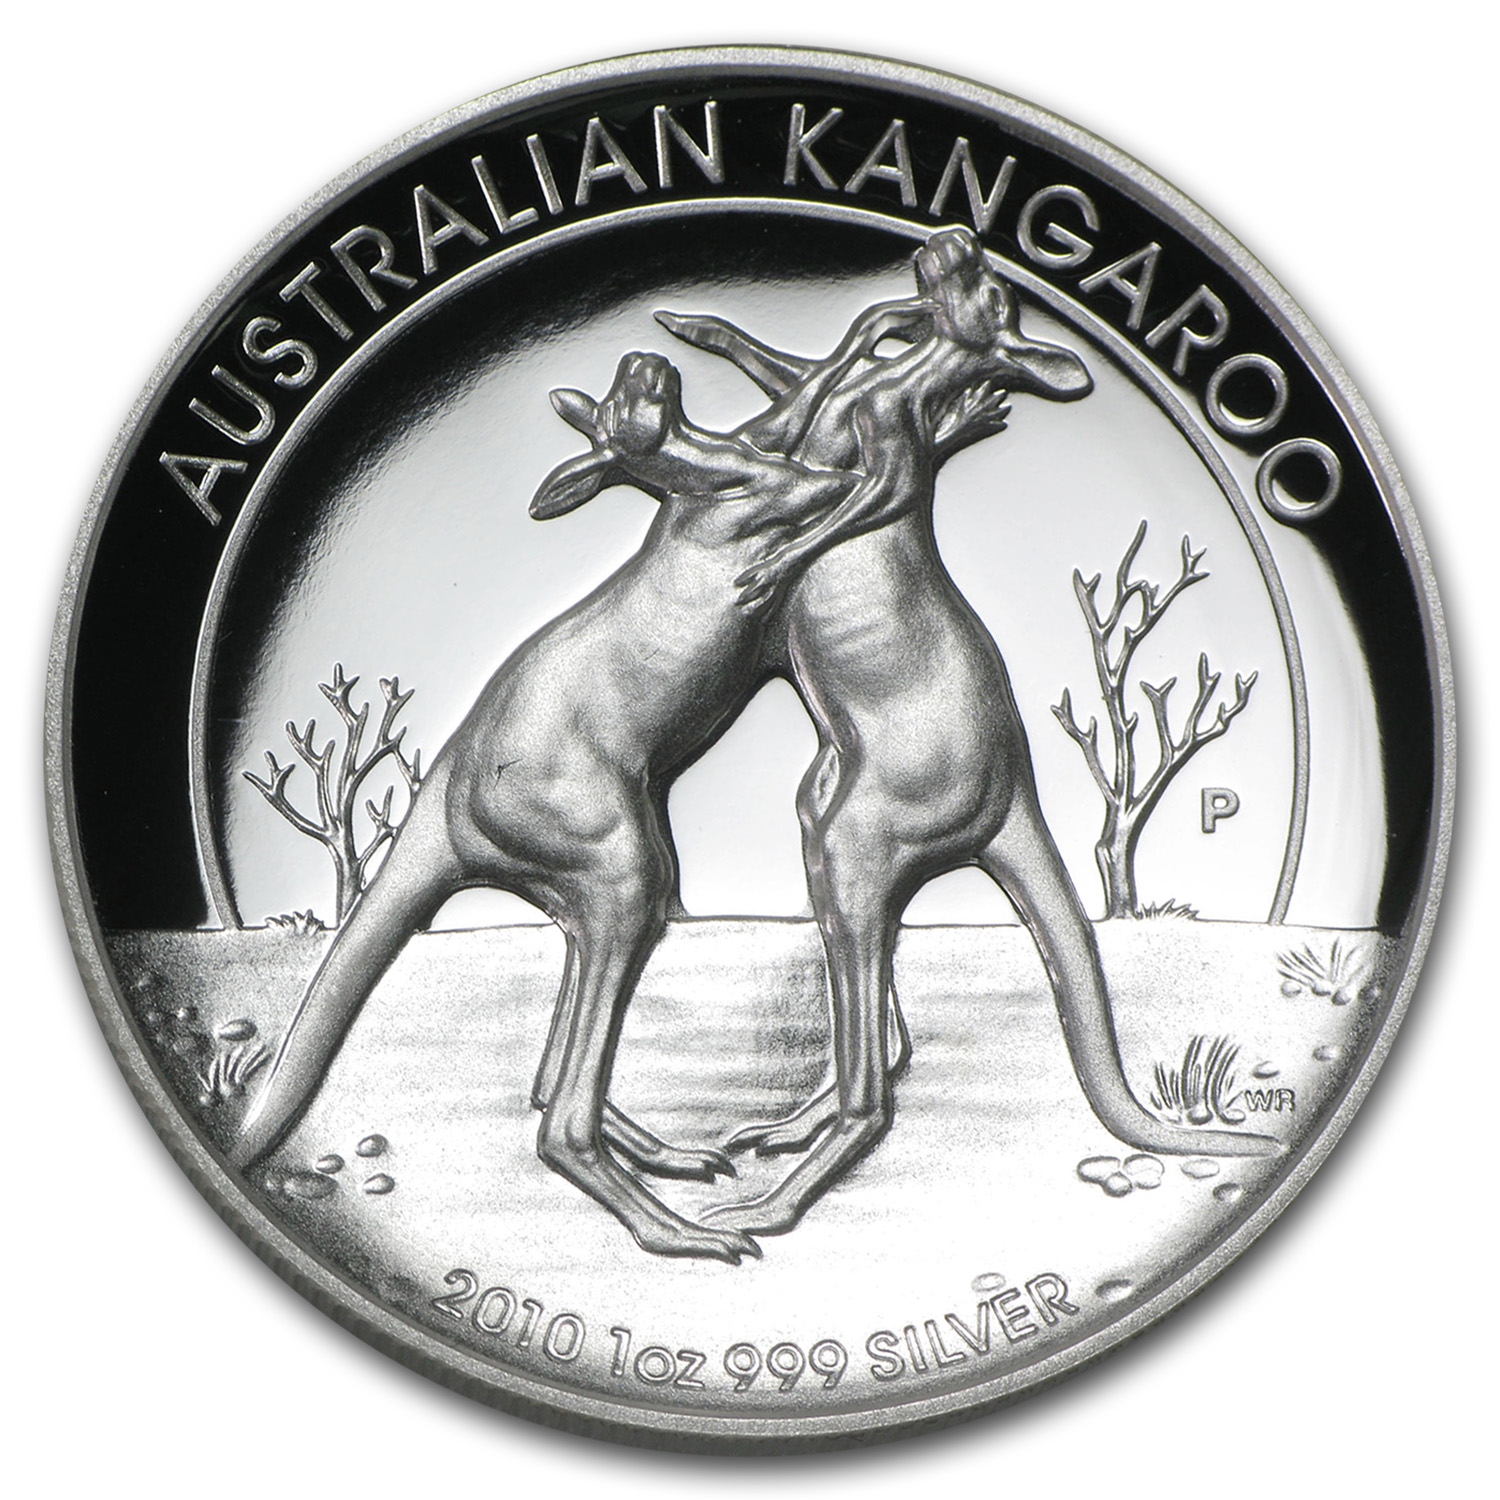 2010 1 oz Silver Australian Kangaroo Proof (High Relief)